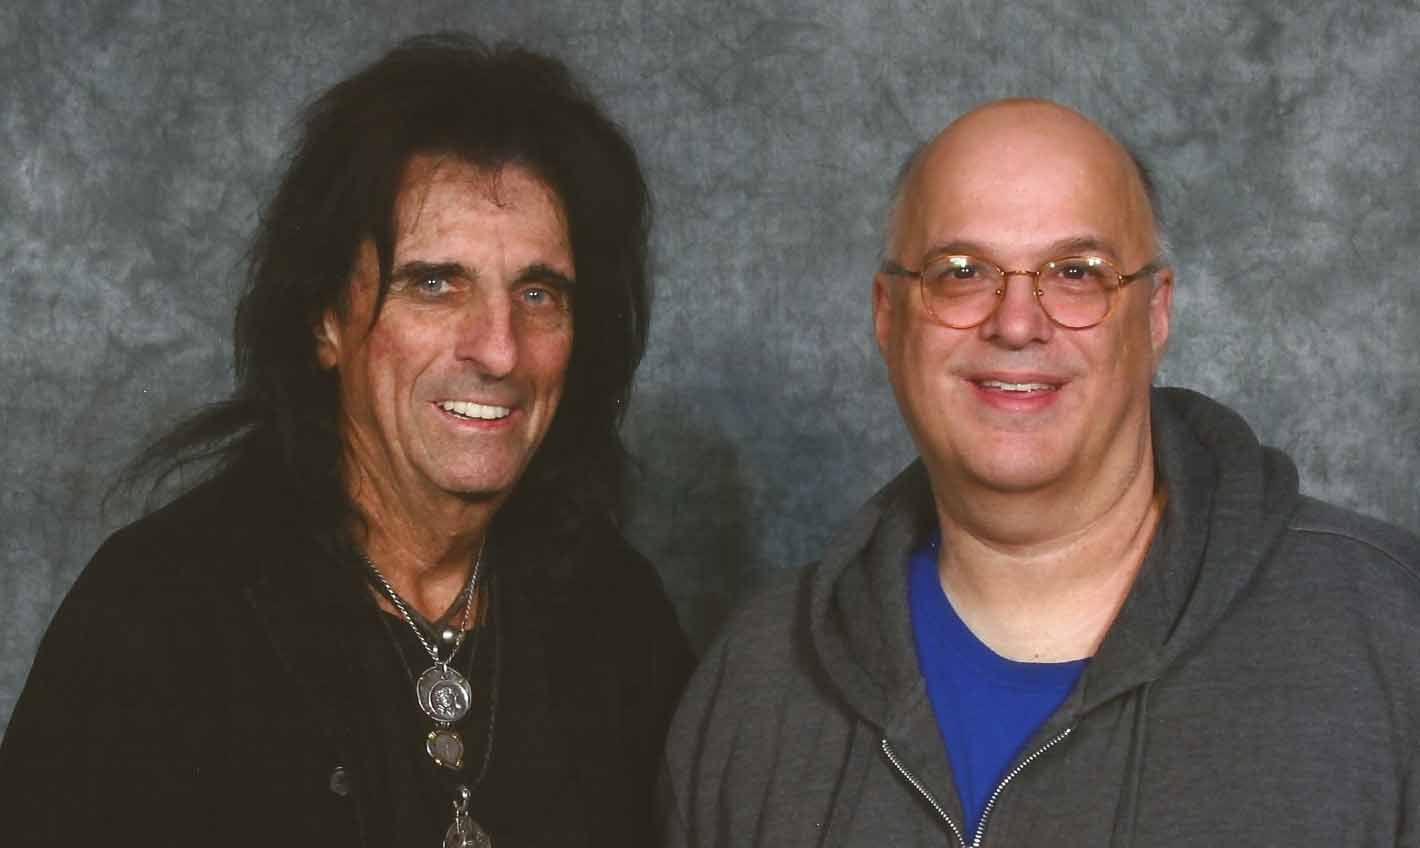 AliceCooper_photo_edit_small.jpg